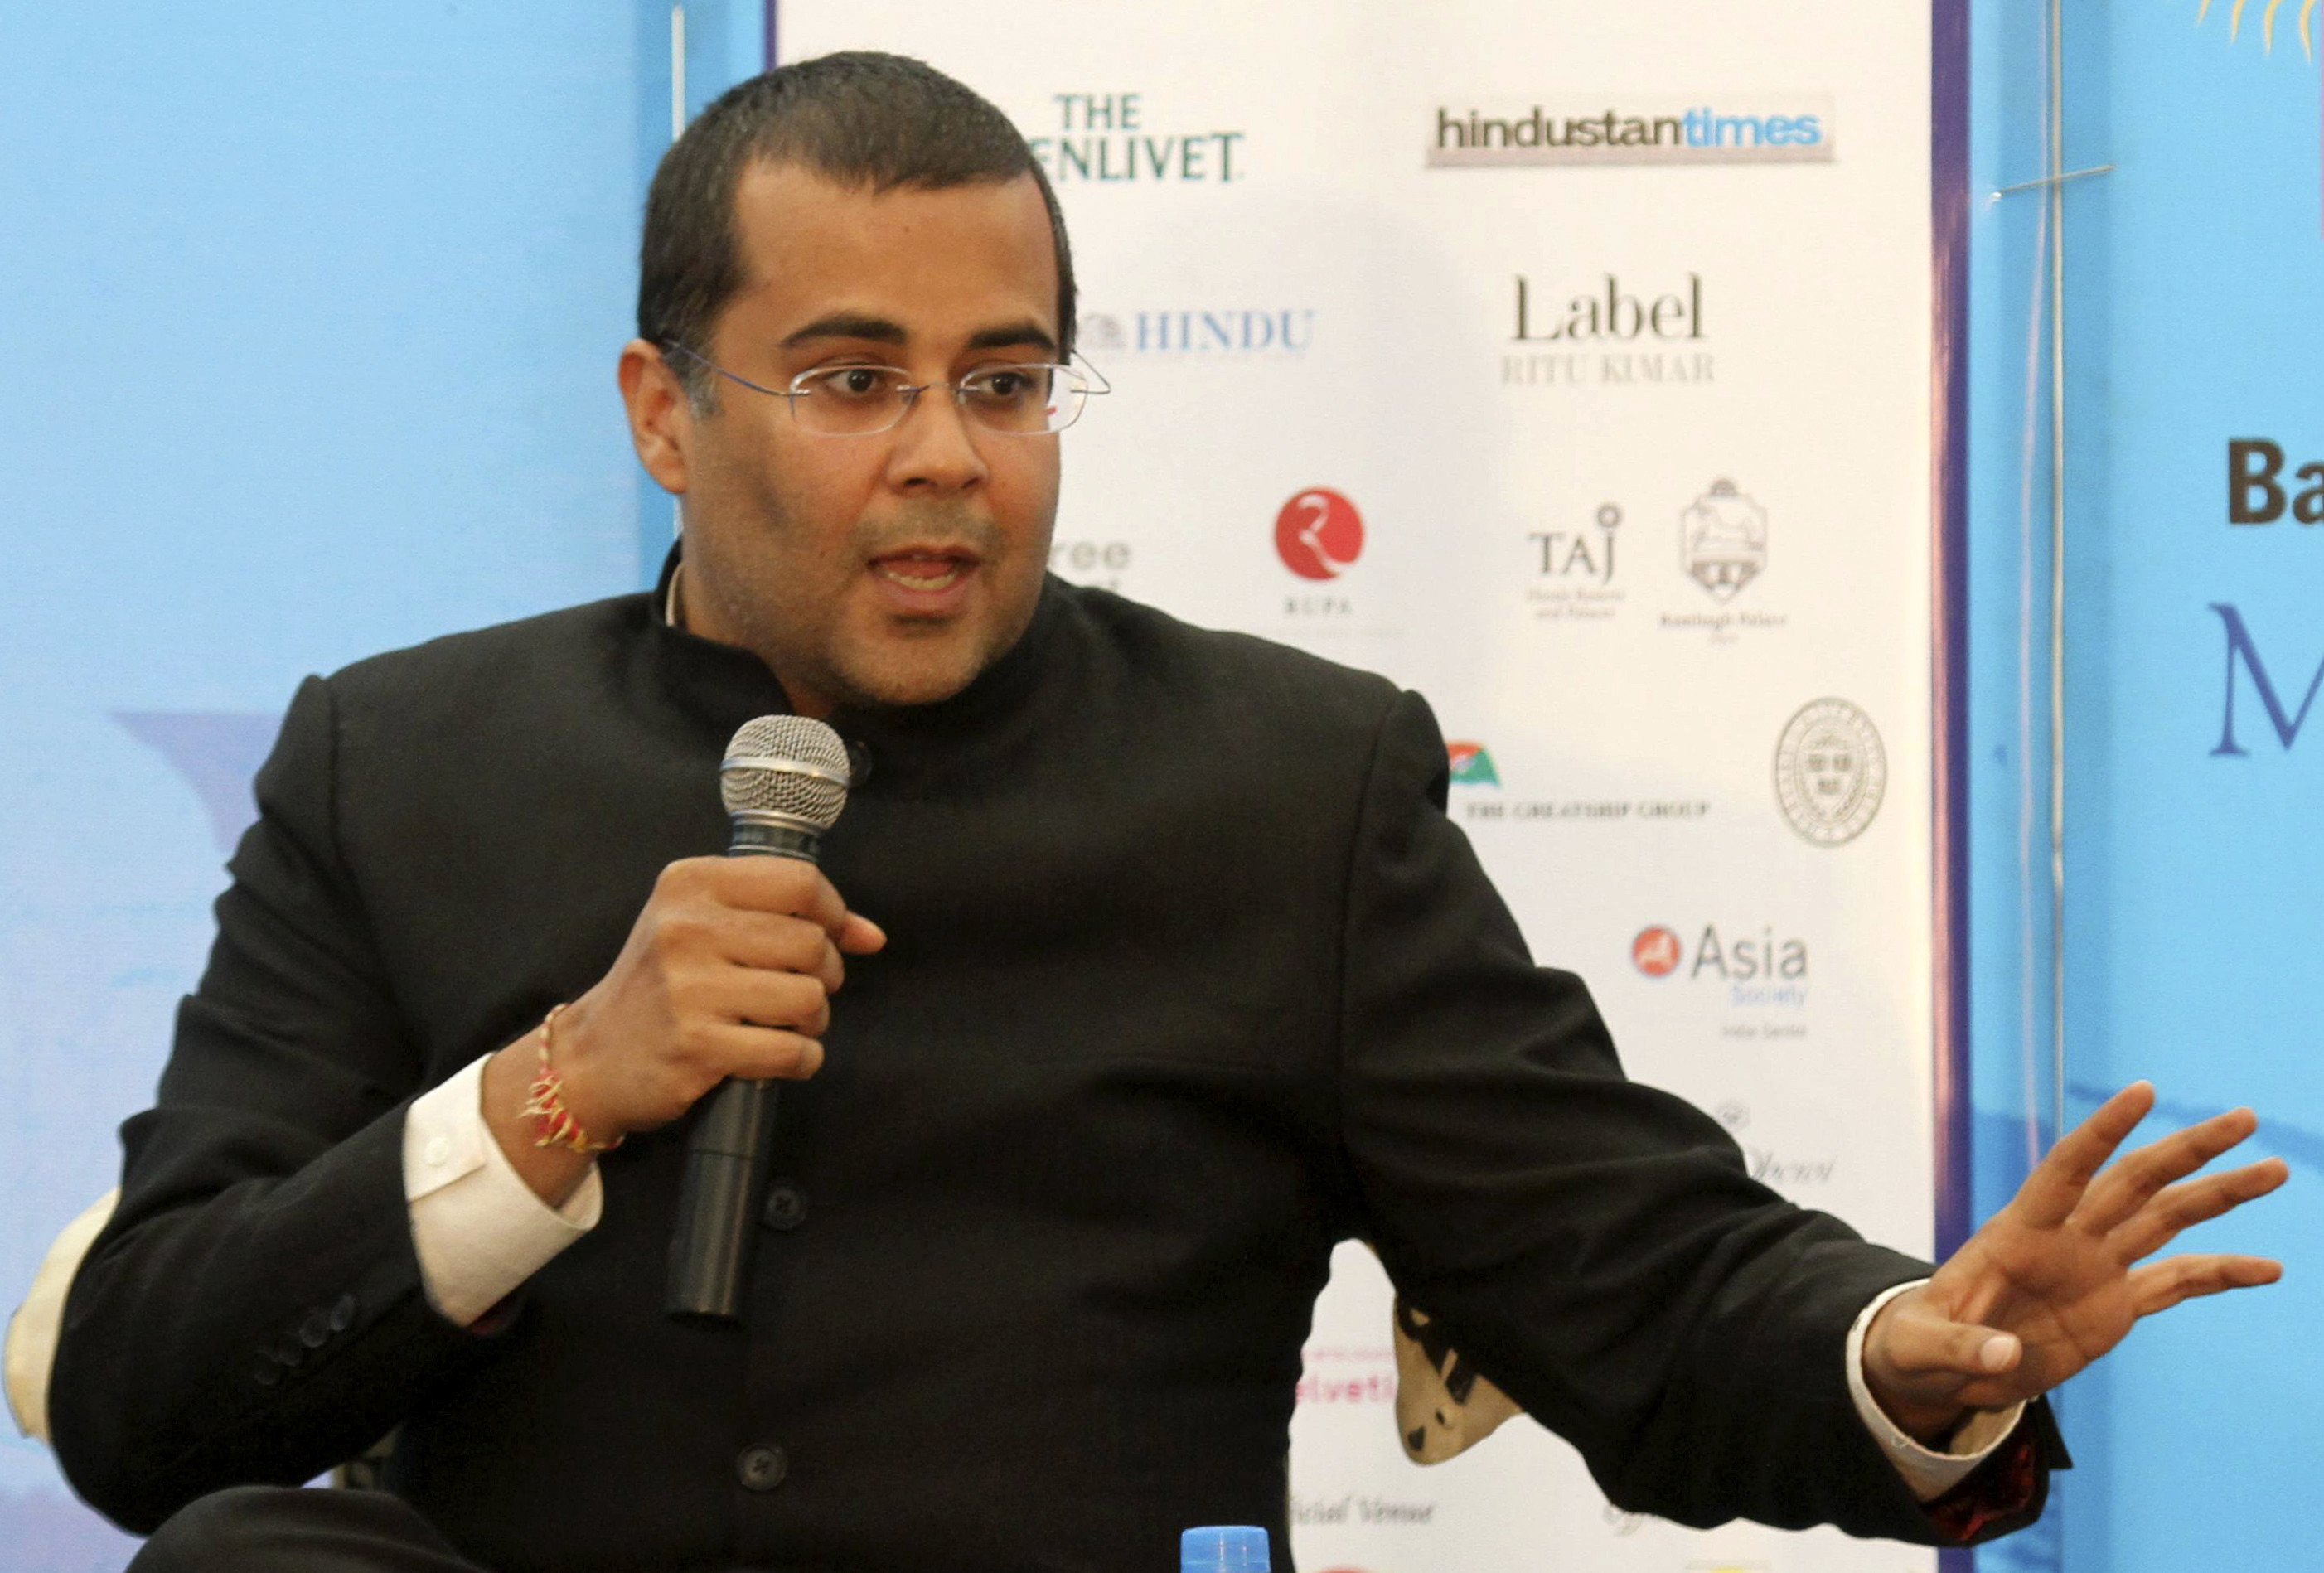 Indian writer Chetan Bhagat speaks at the annual Literature Festival in Jaipur, capital of India's desert state of Rajasthan, January 21, 2012. Bhagat on Saturday criticised the support leant to authors whose books are banned for offending religious communities, a day after Salman Rushdie cancelled his trip to Jaipur citing death threat warning.  REUTERS/Altaf Hussain (INDIA - Tags: EDUCATION ANNIVERSARY ENTERTAINMENT) - GM1E81L19VQ01